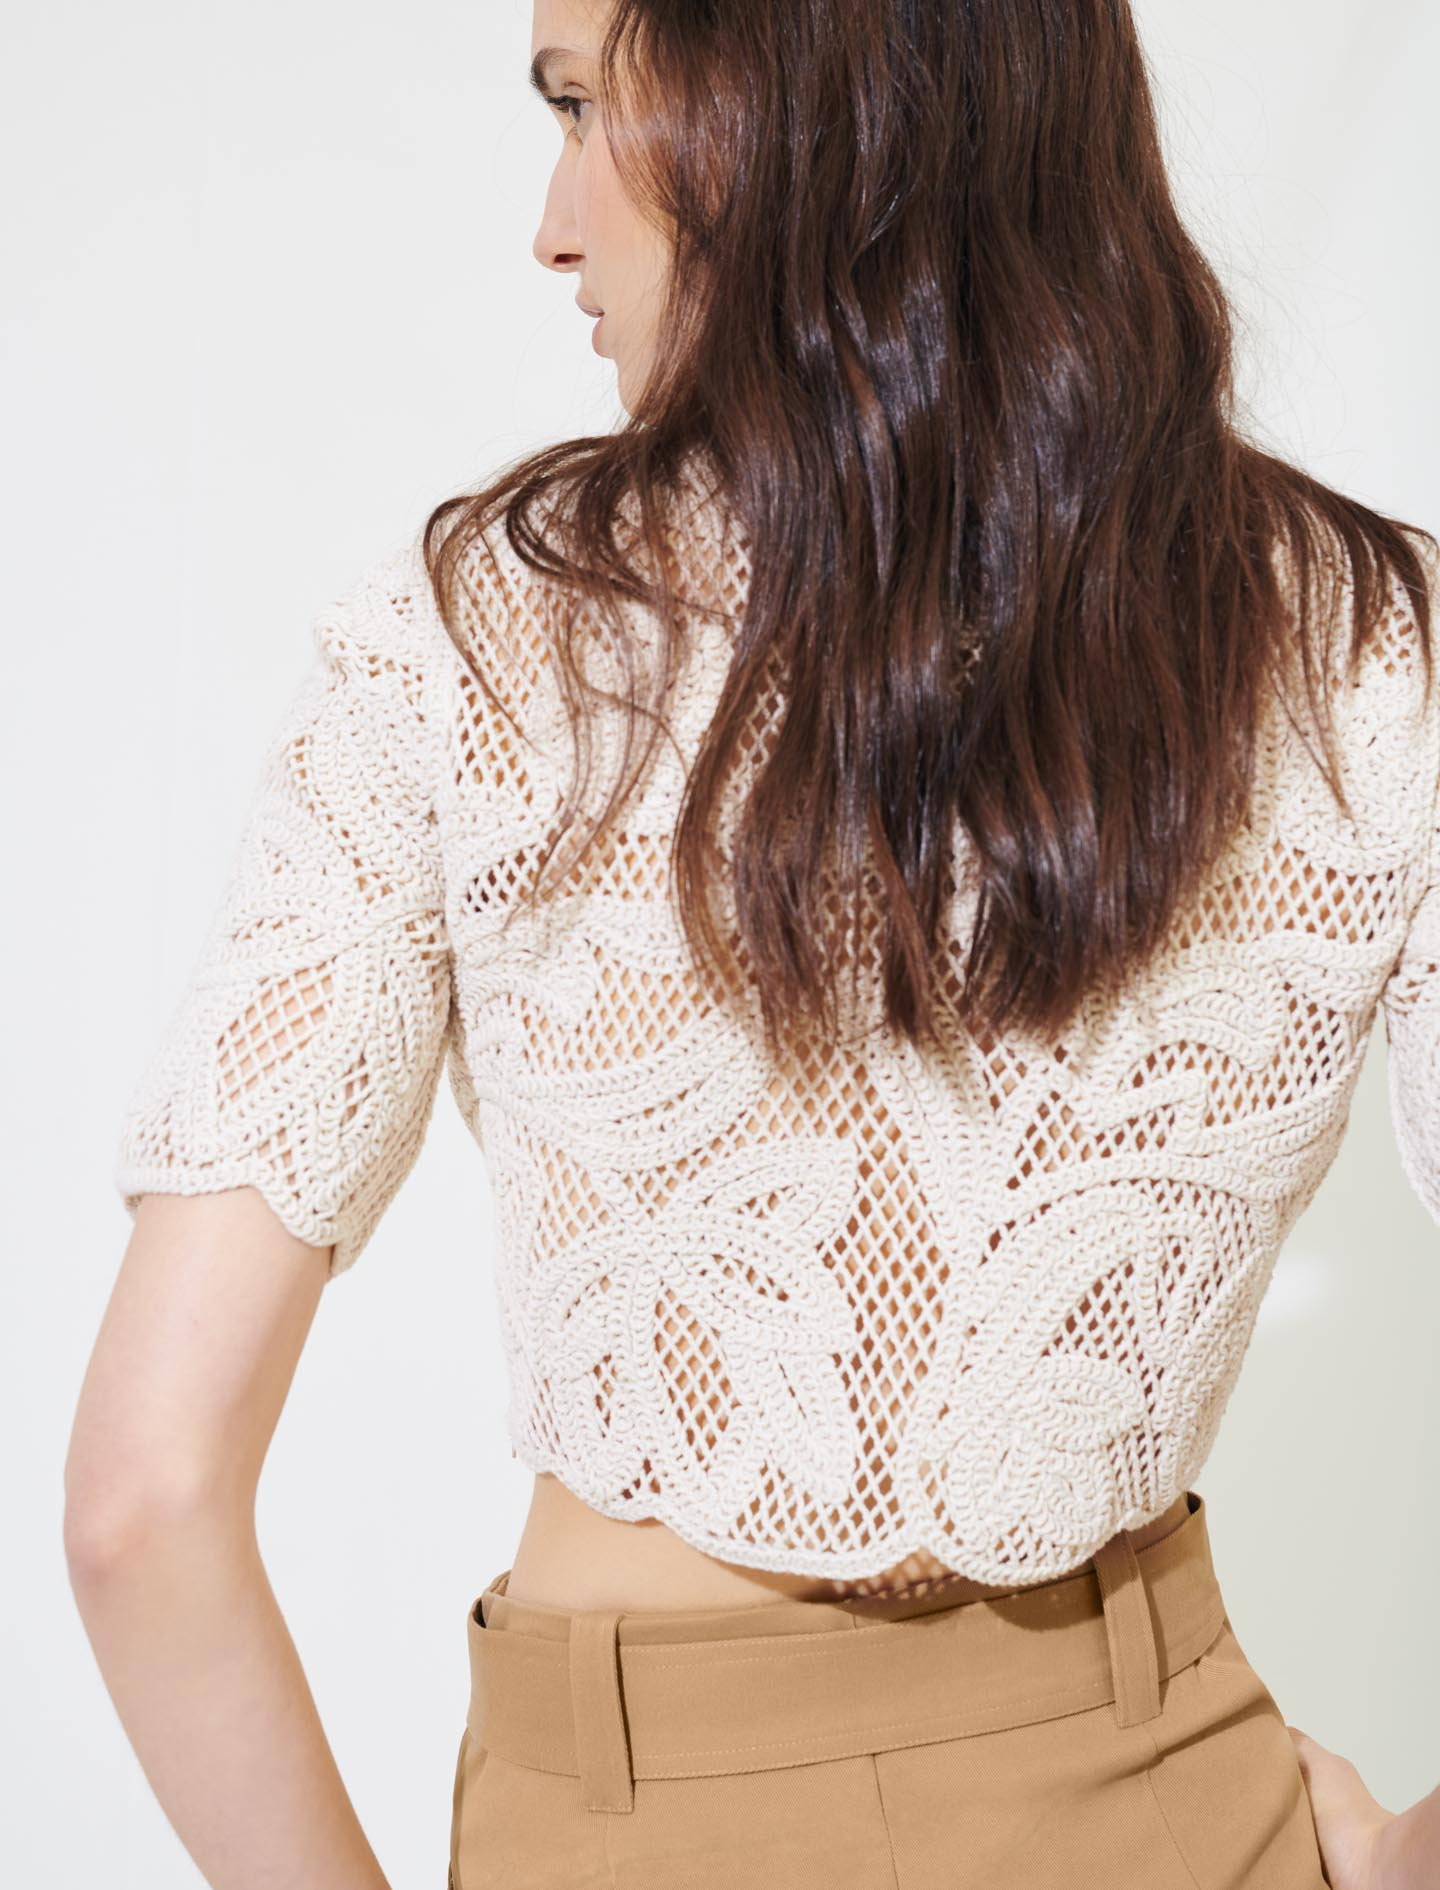 Crochet top with short sleeves in beige by Maje Paris